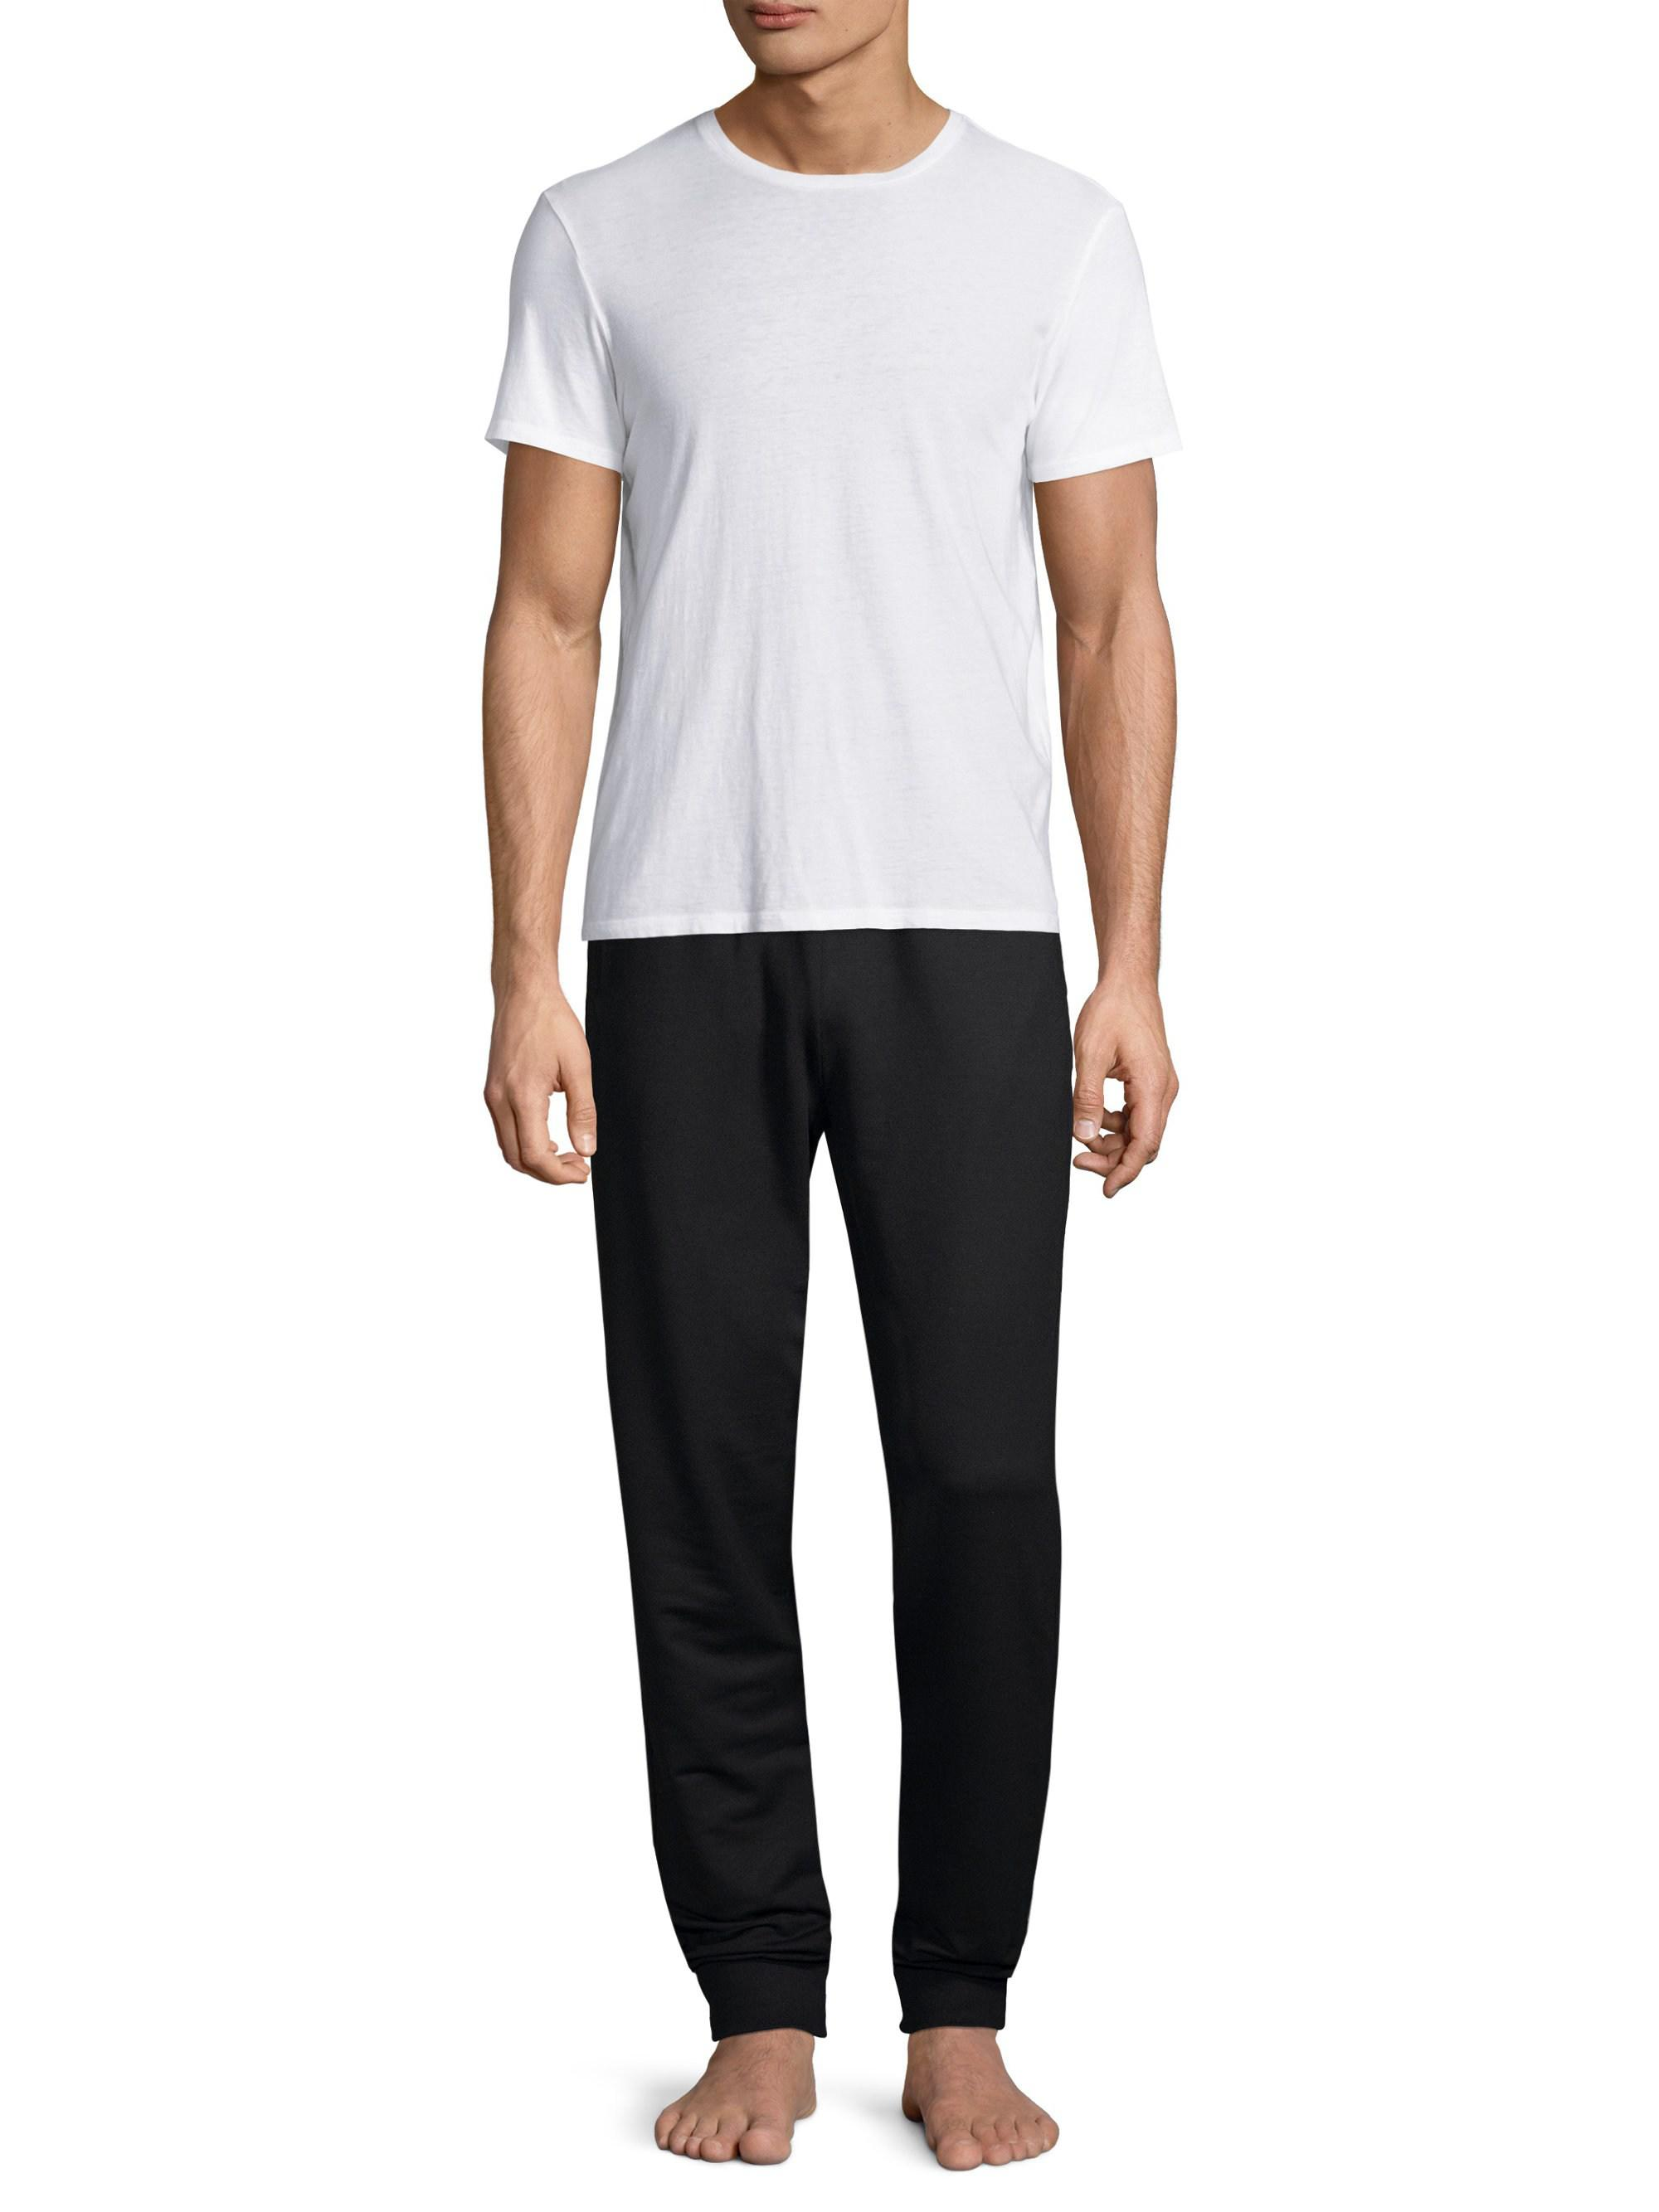 bd3920fdd7 Versace Black Greca Border Gym Trousers for men